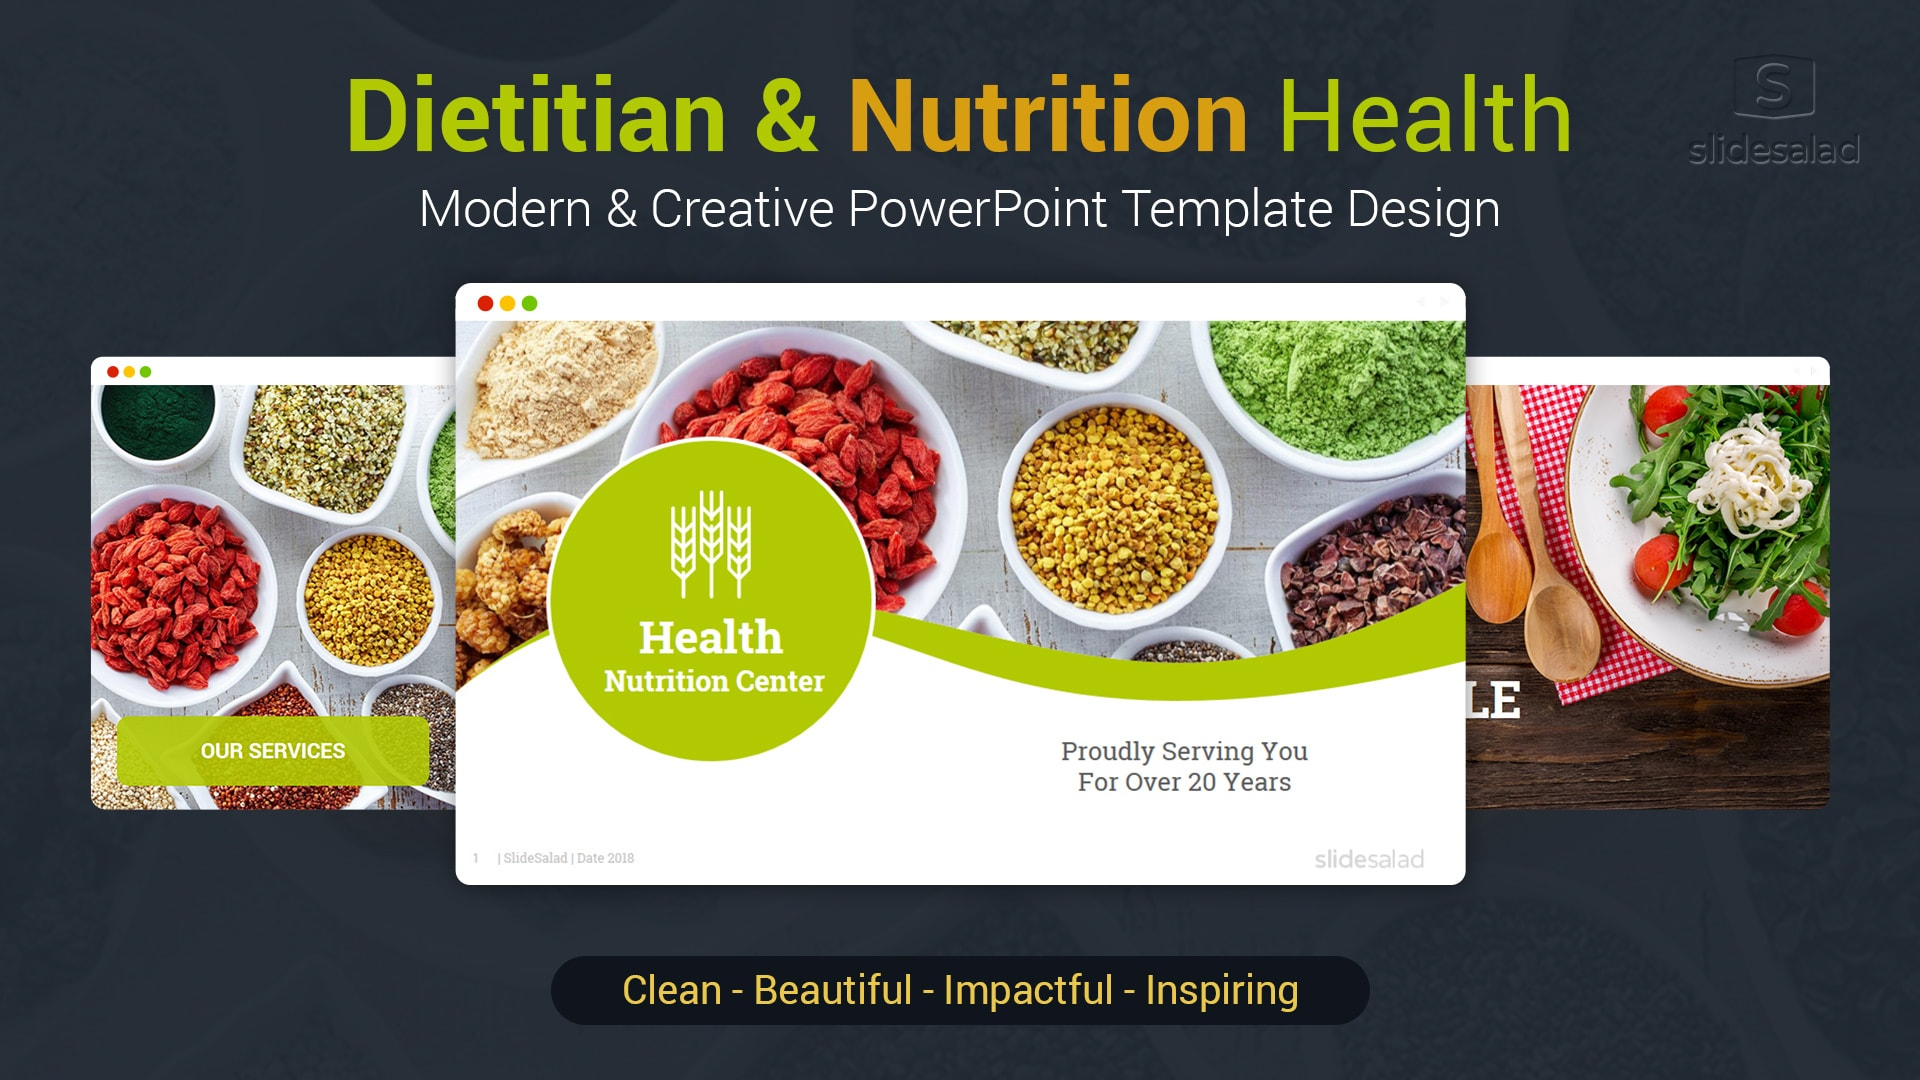 Diet and Nutrition PowerPoint Template Designs